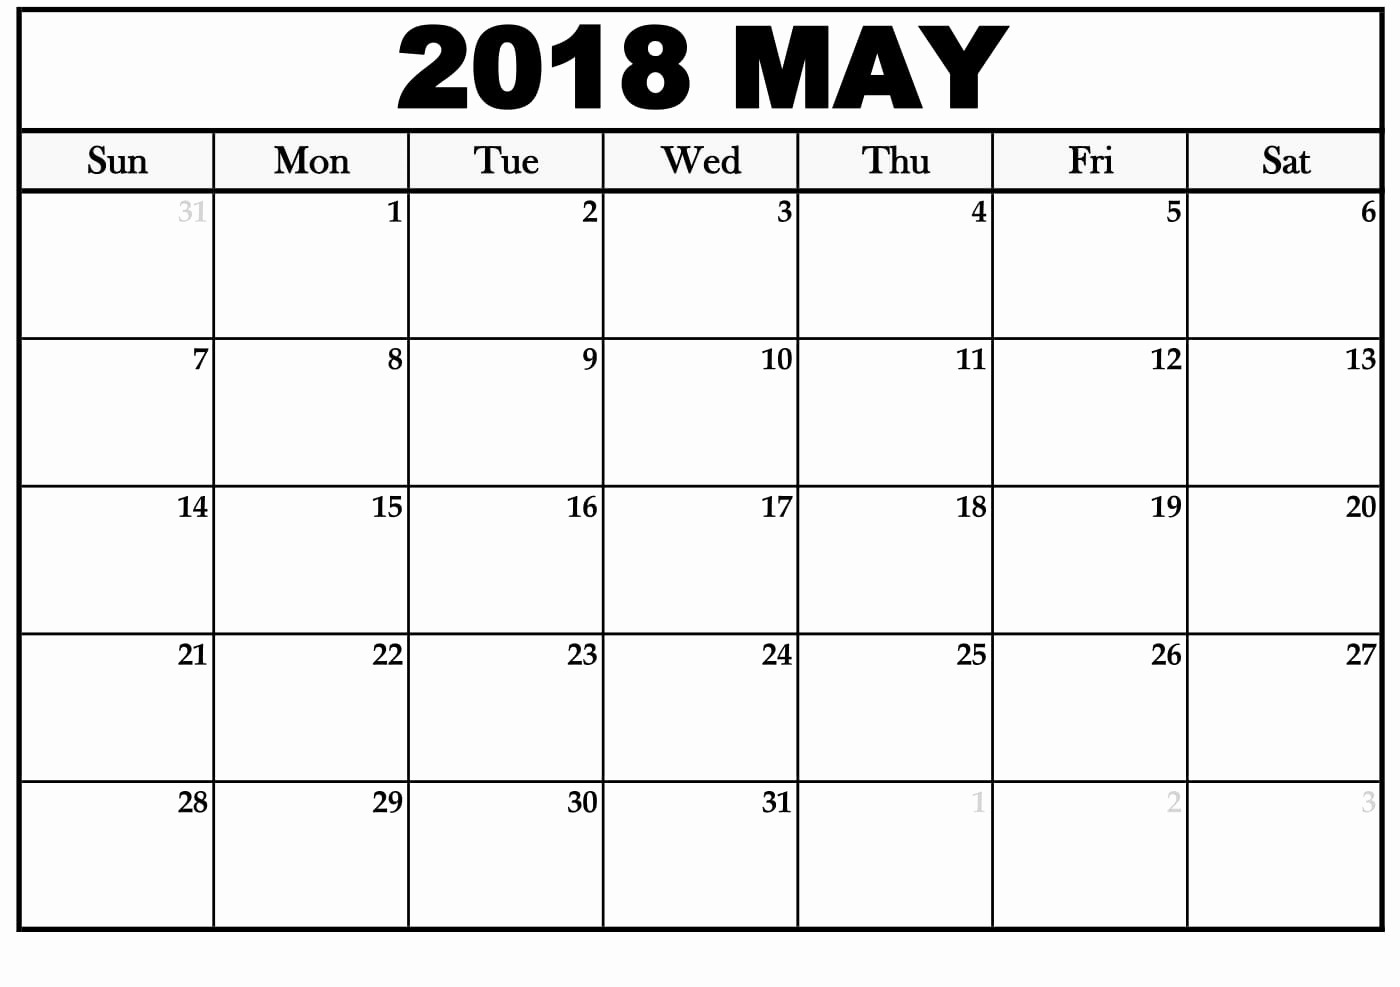 Blank May 2018 Calendar Printable Beautiful May 2018 Blank Calendar